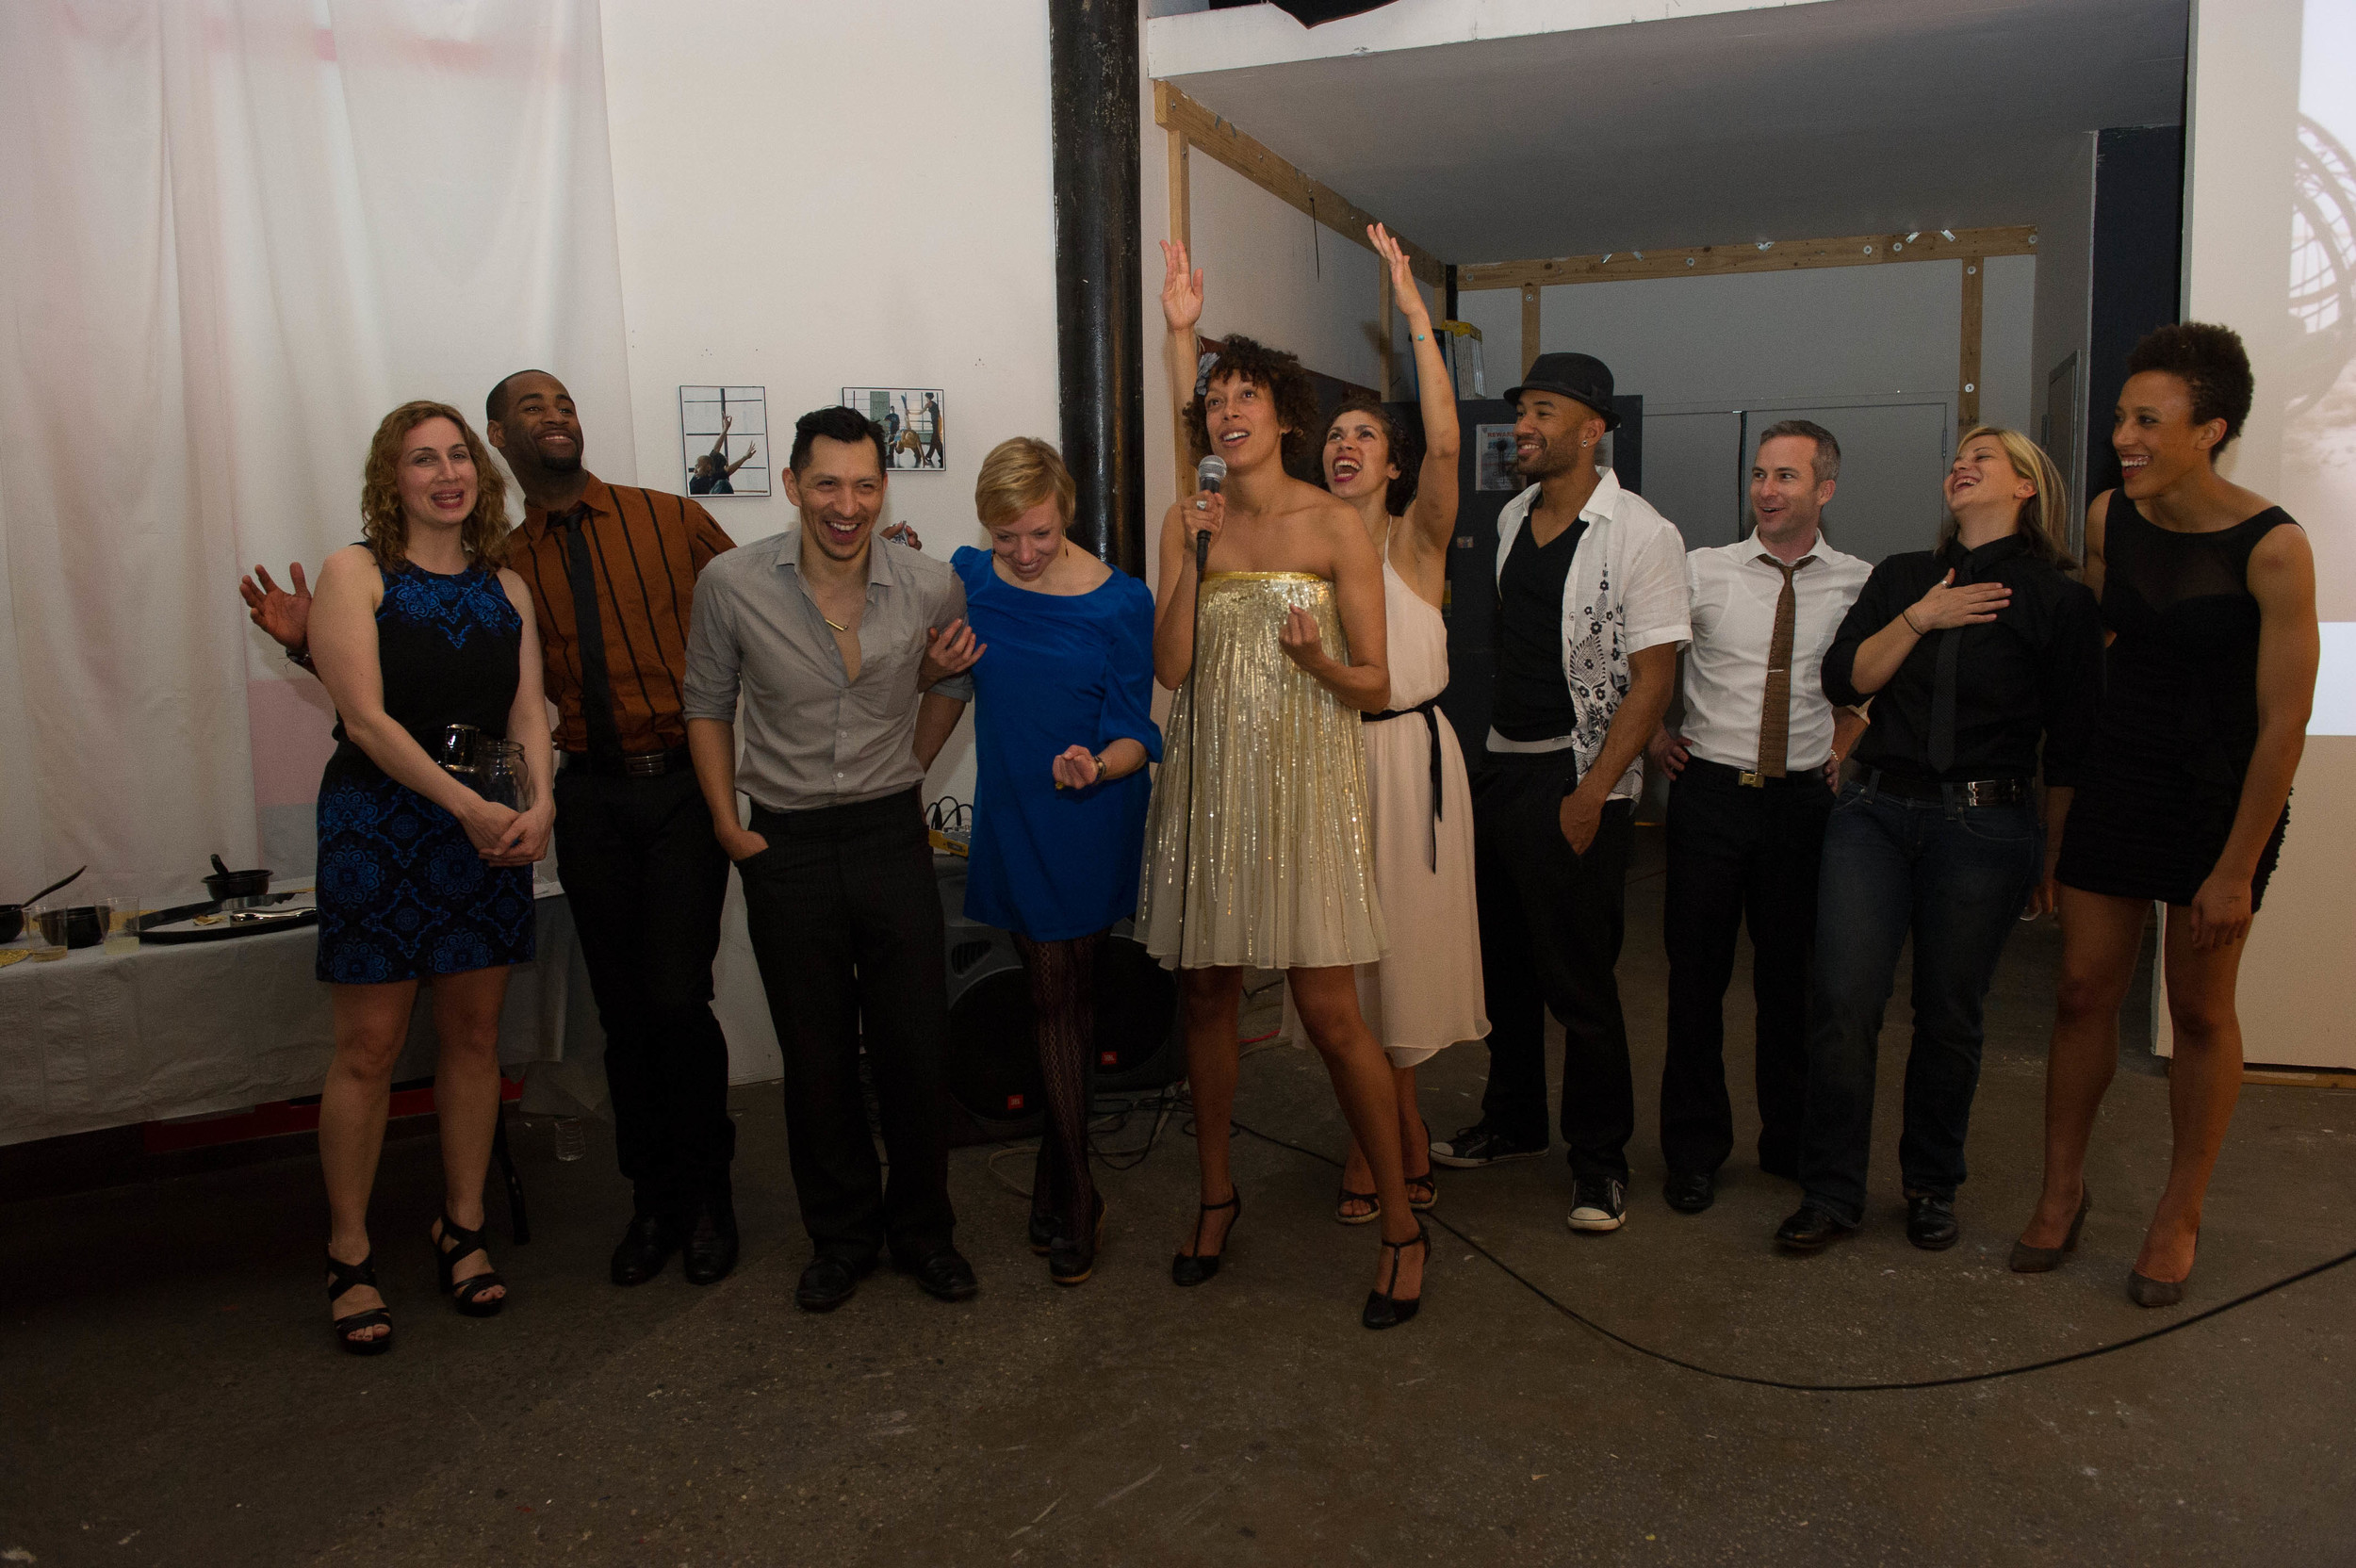 From left to right: Alice Stock, Company Stefanie Batten Bland: Trenard Mobley, Miguel Anaya, Jesse Keller, Stefanie Batten Bland, Emilie Camacho, Rafåel Kaney Duverger, Todd Stone (Company Manager), Lacee Godman (Lighting Designer), Brittany Engel-Adams